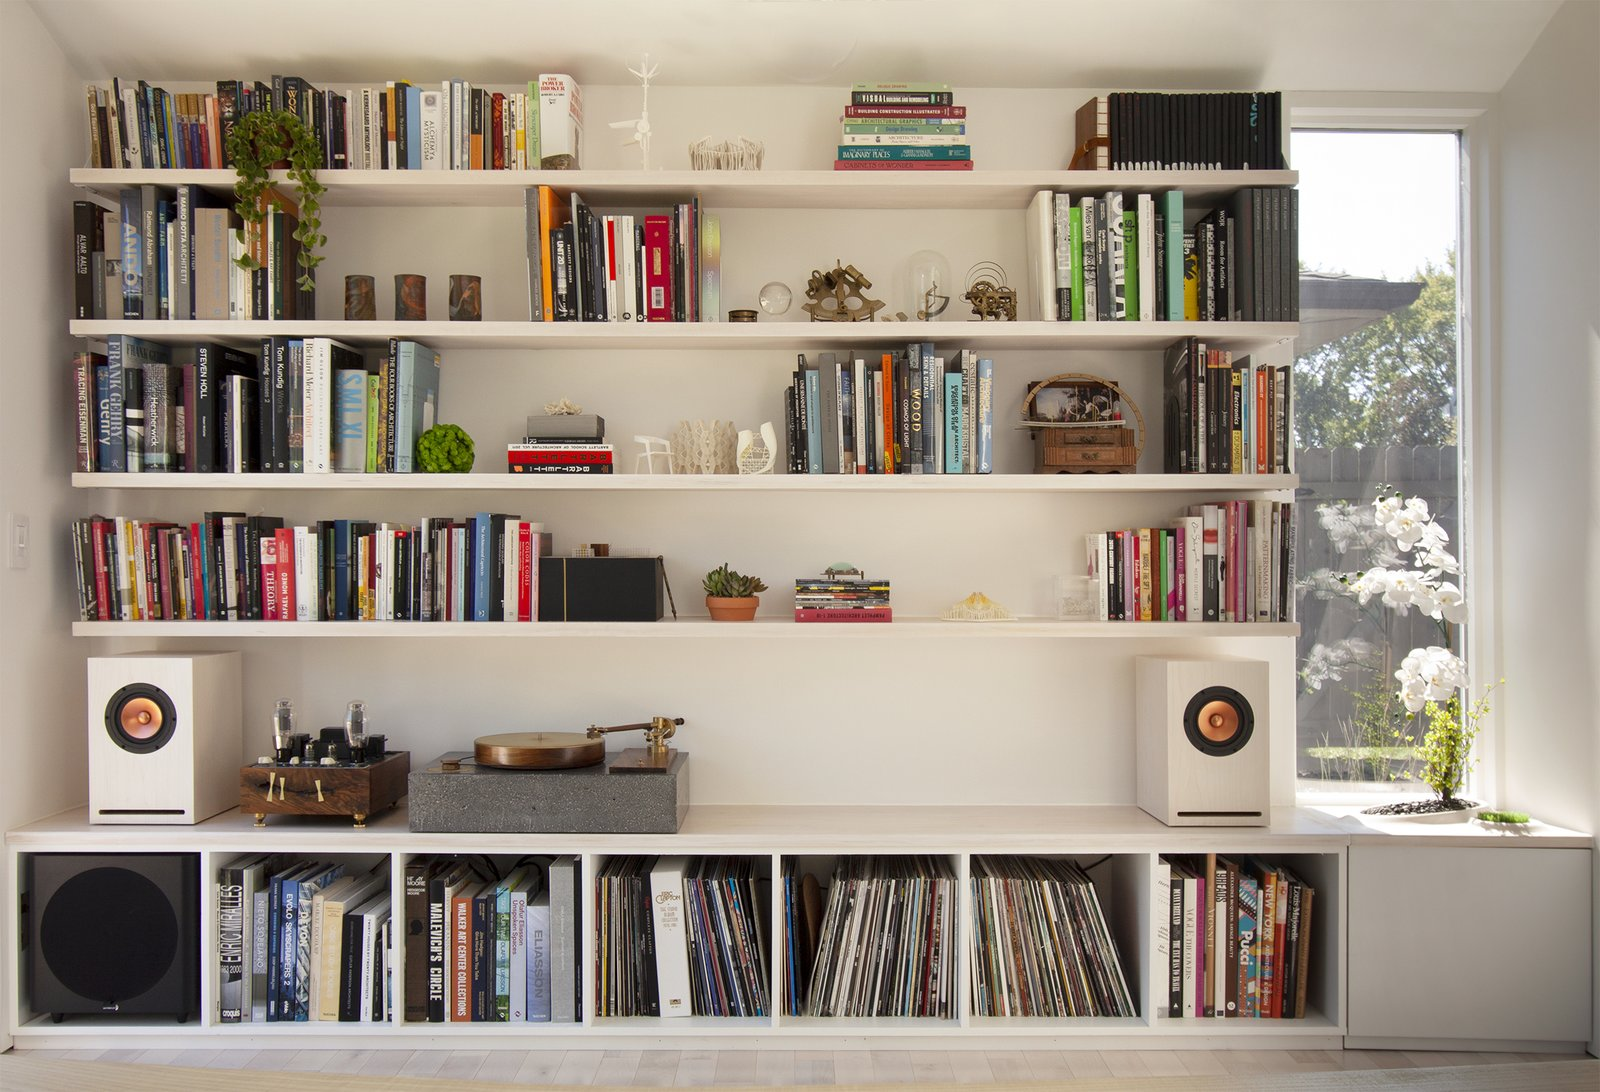 Fish Scale Studio bookshelves and turntable